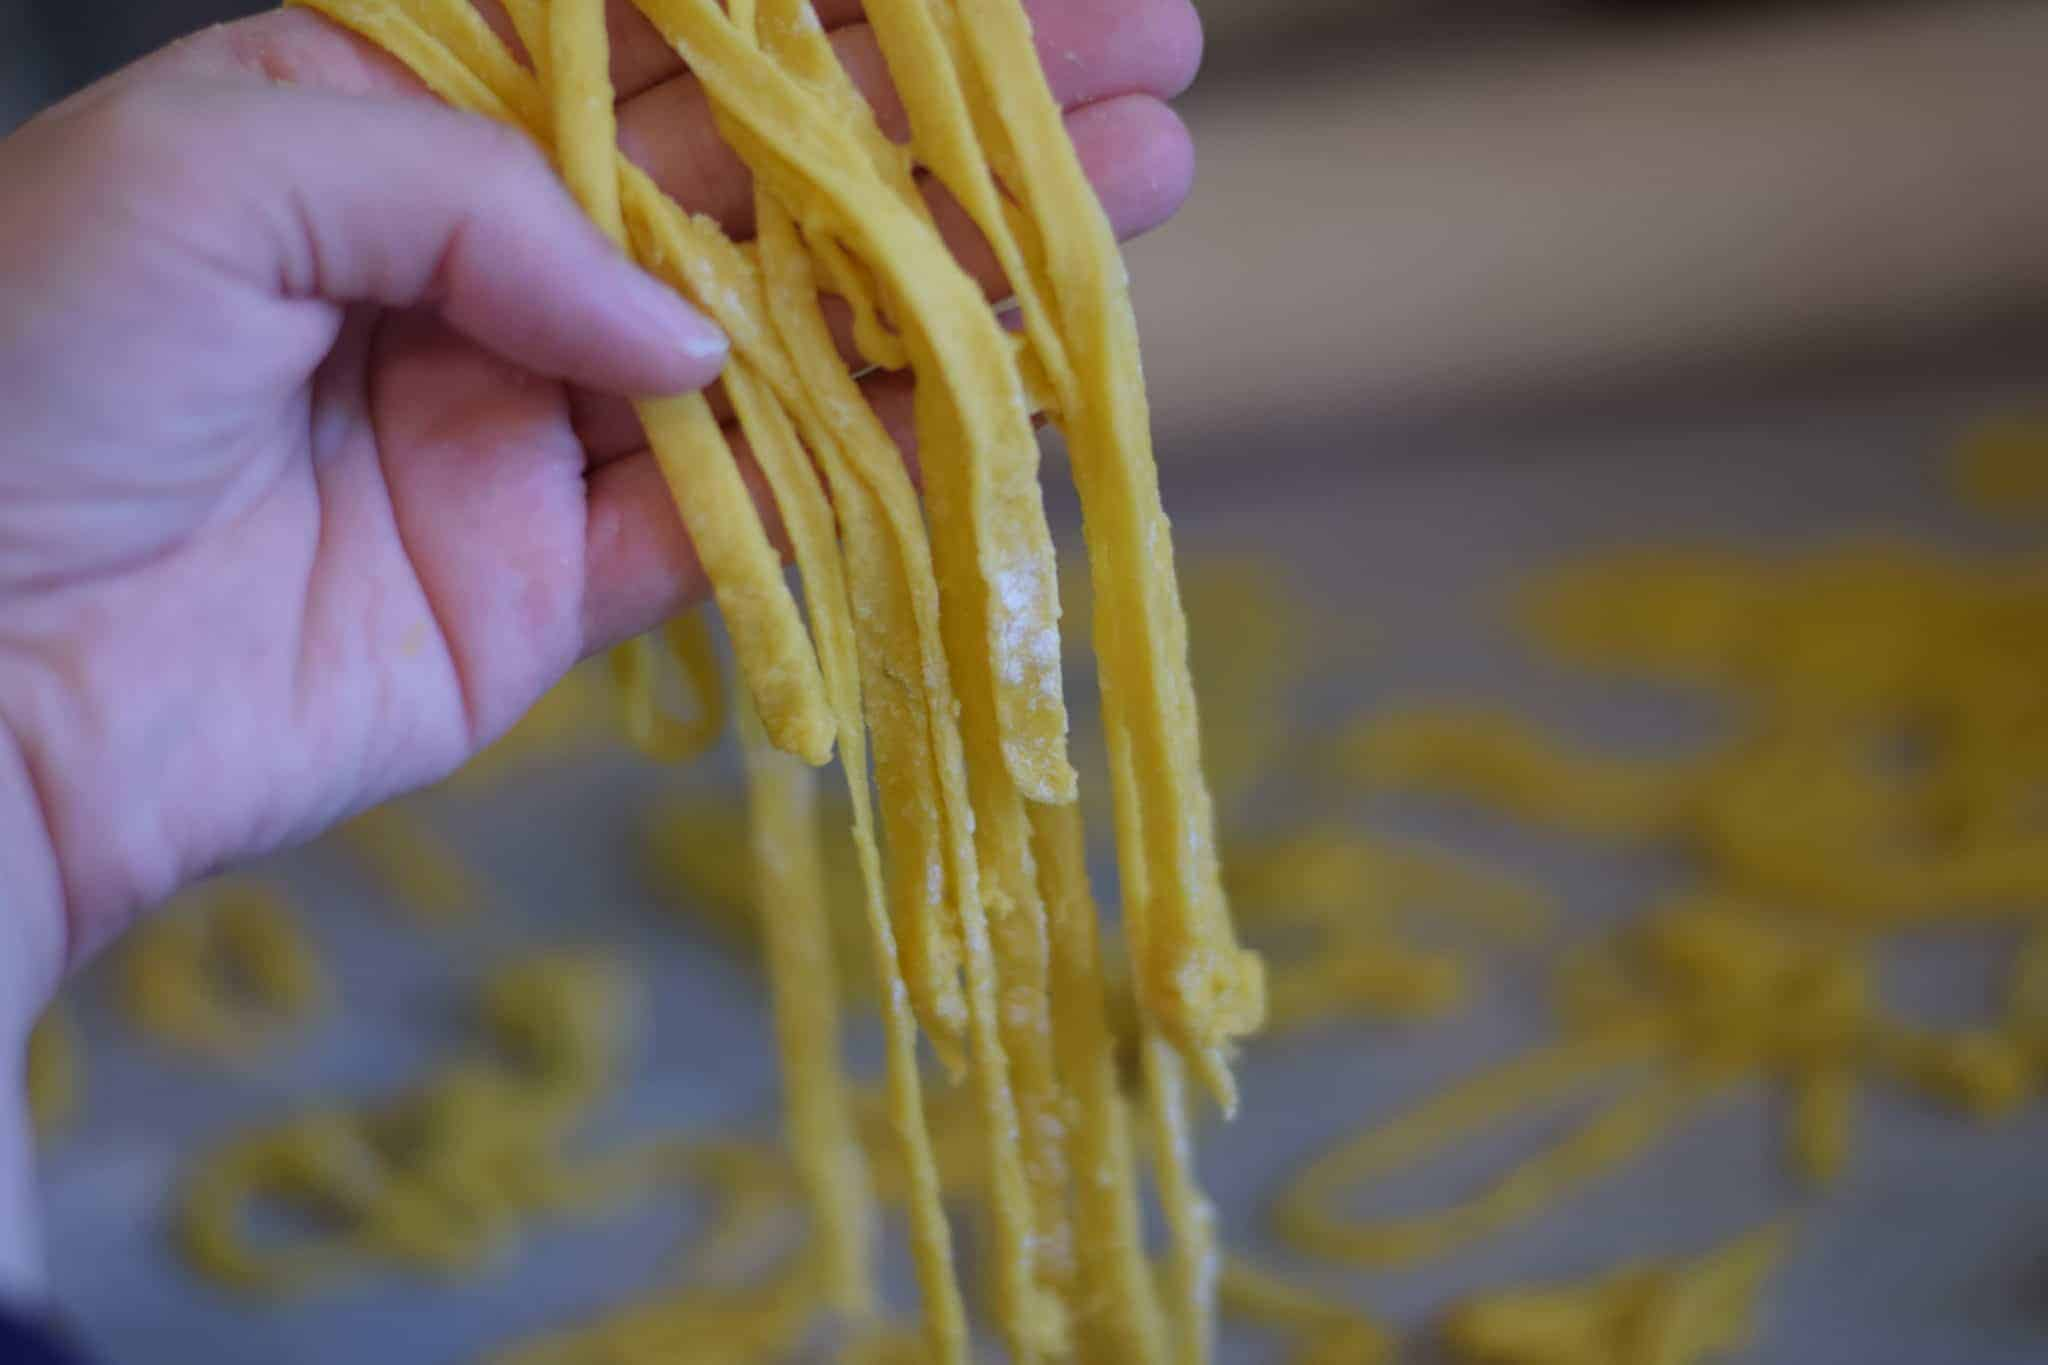 How to Make Homemade Pasta Noodles